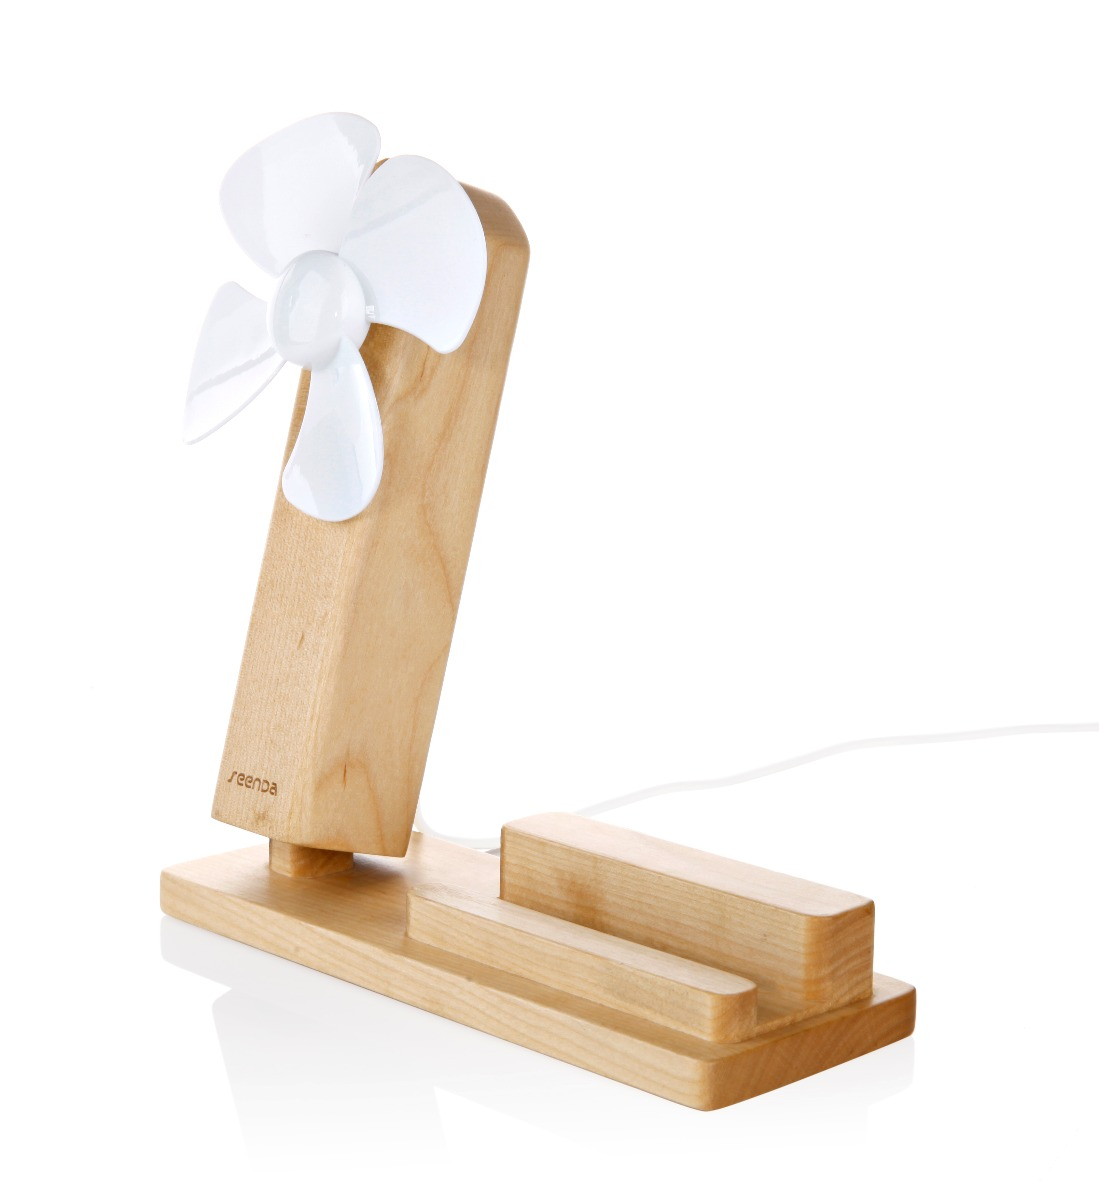 Seenda IPS-Z10 Wooden Phone Holder with Desktop Mini Fan